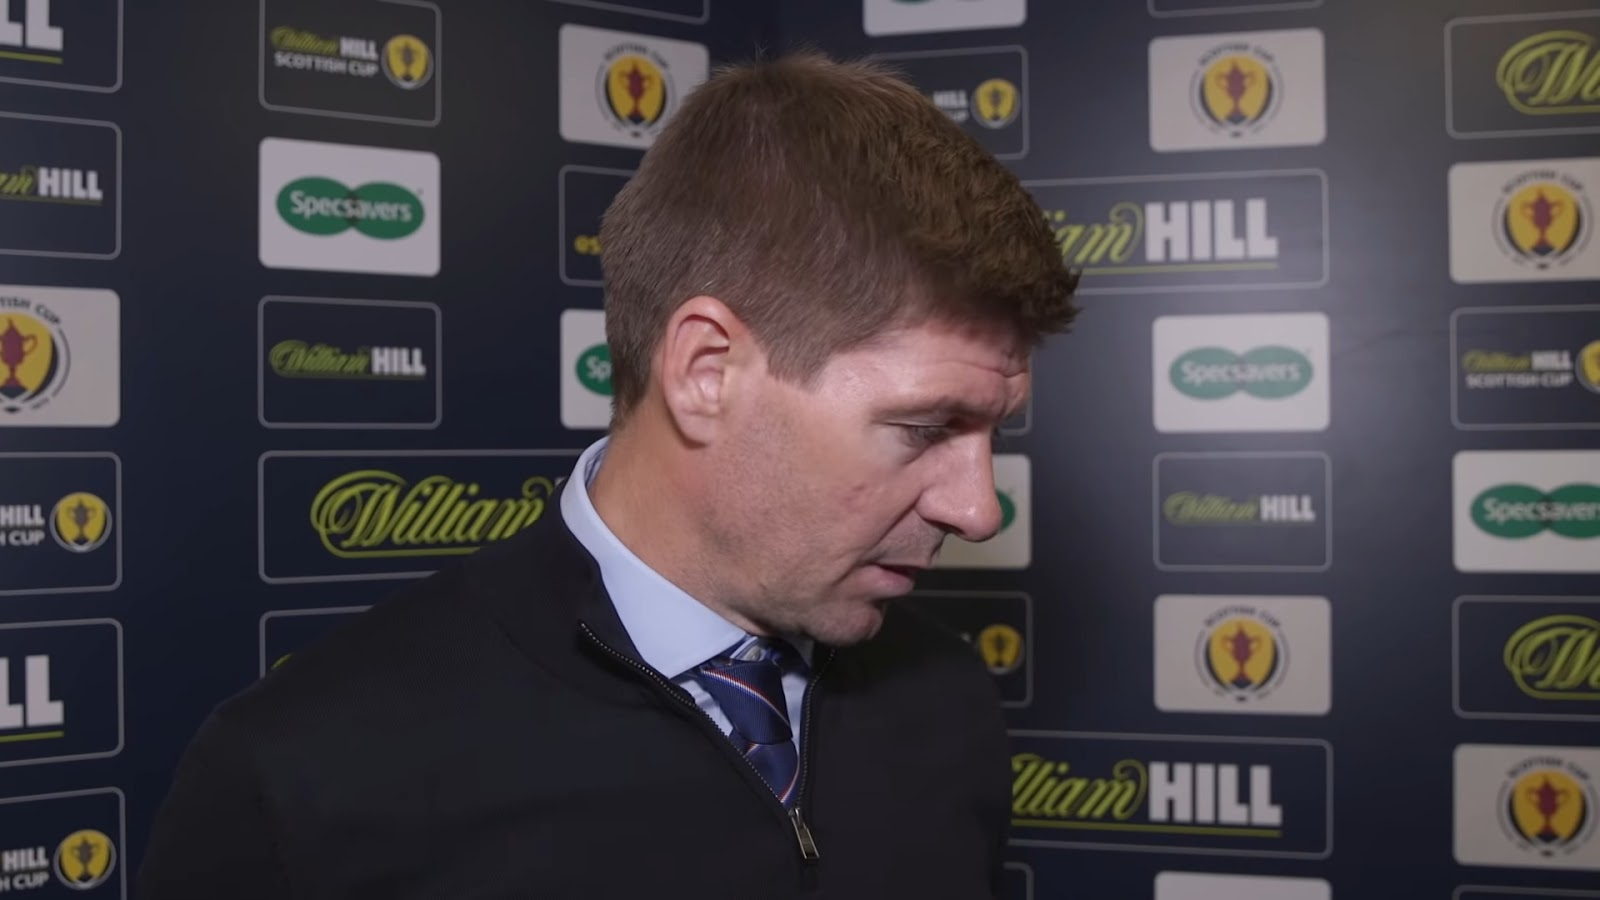 Stevie G has made the same mistake from the start